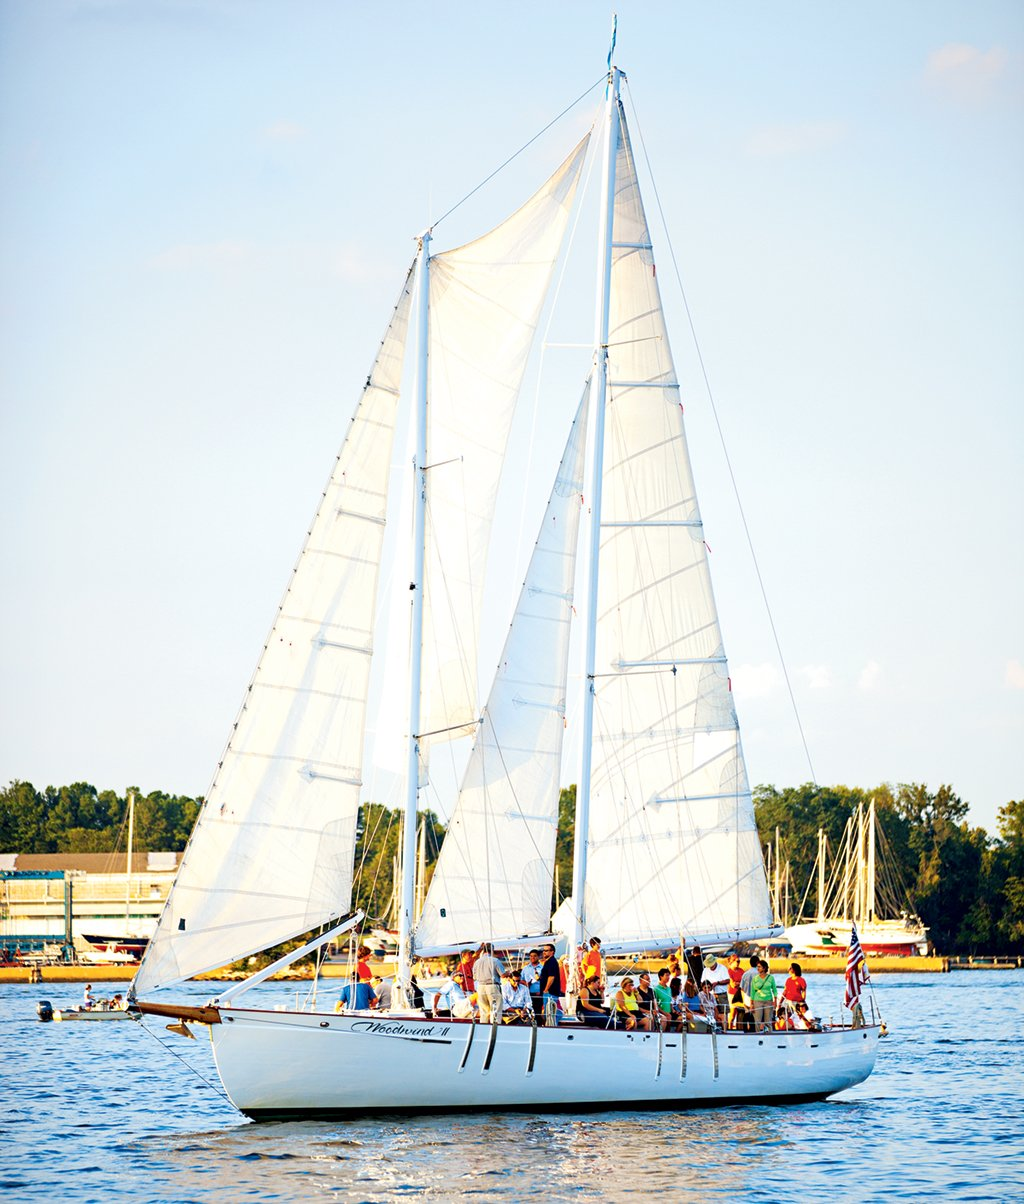 Chesapeake Bay getaway idea: Schooner Woodwind photograph by Scott Suchman